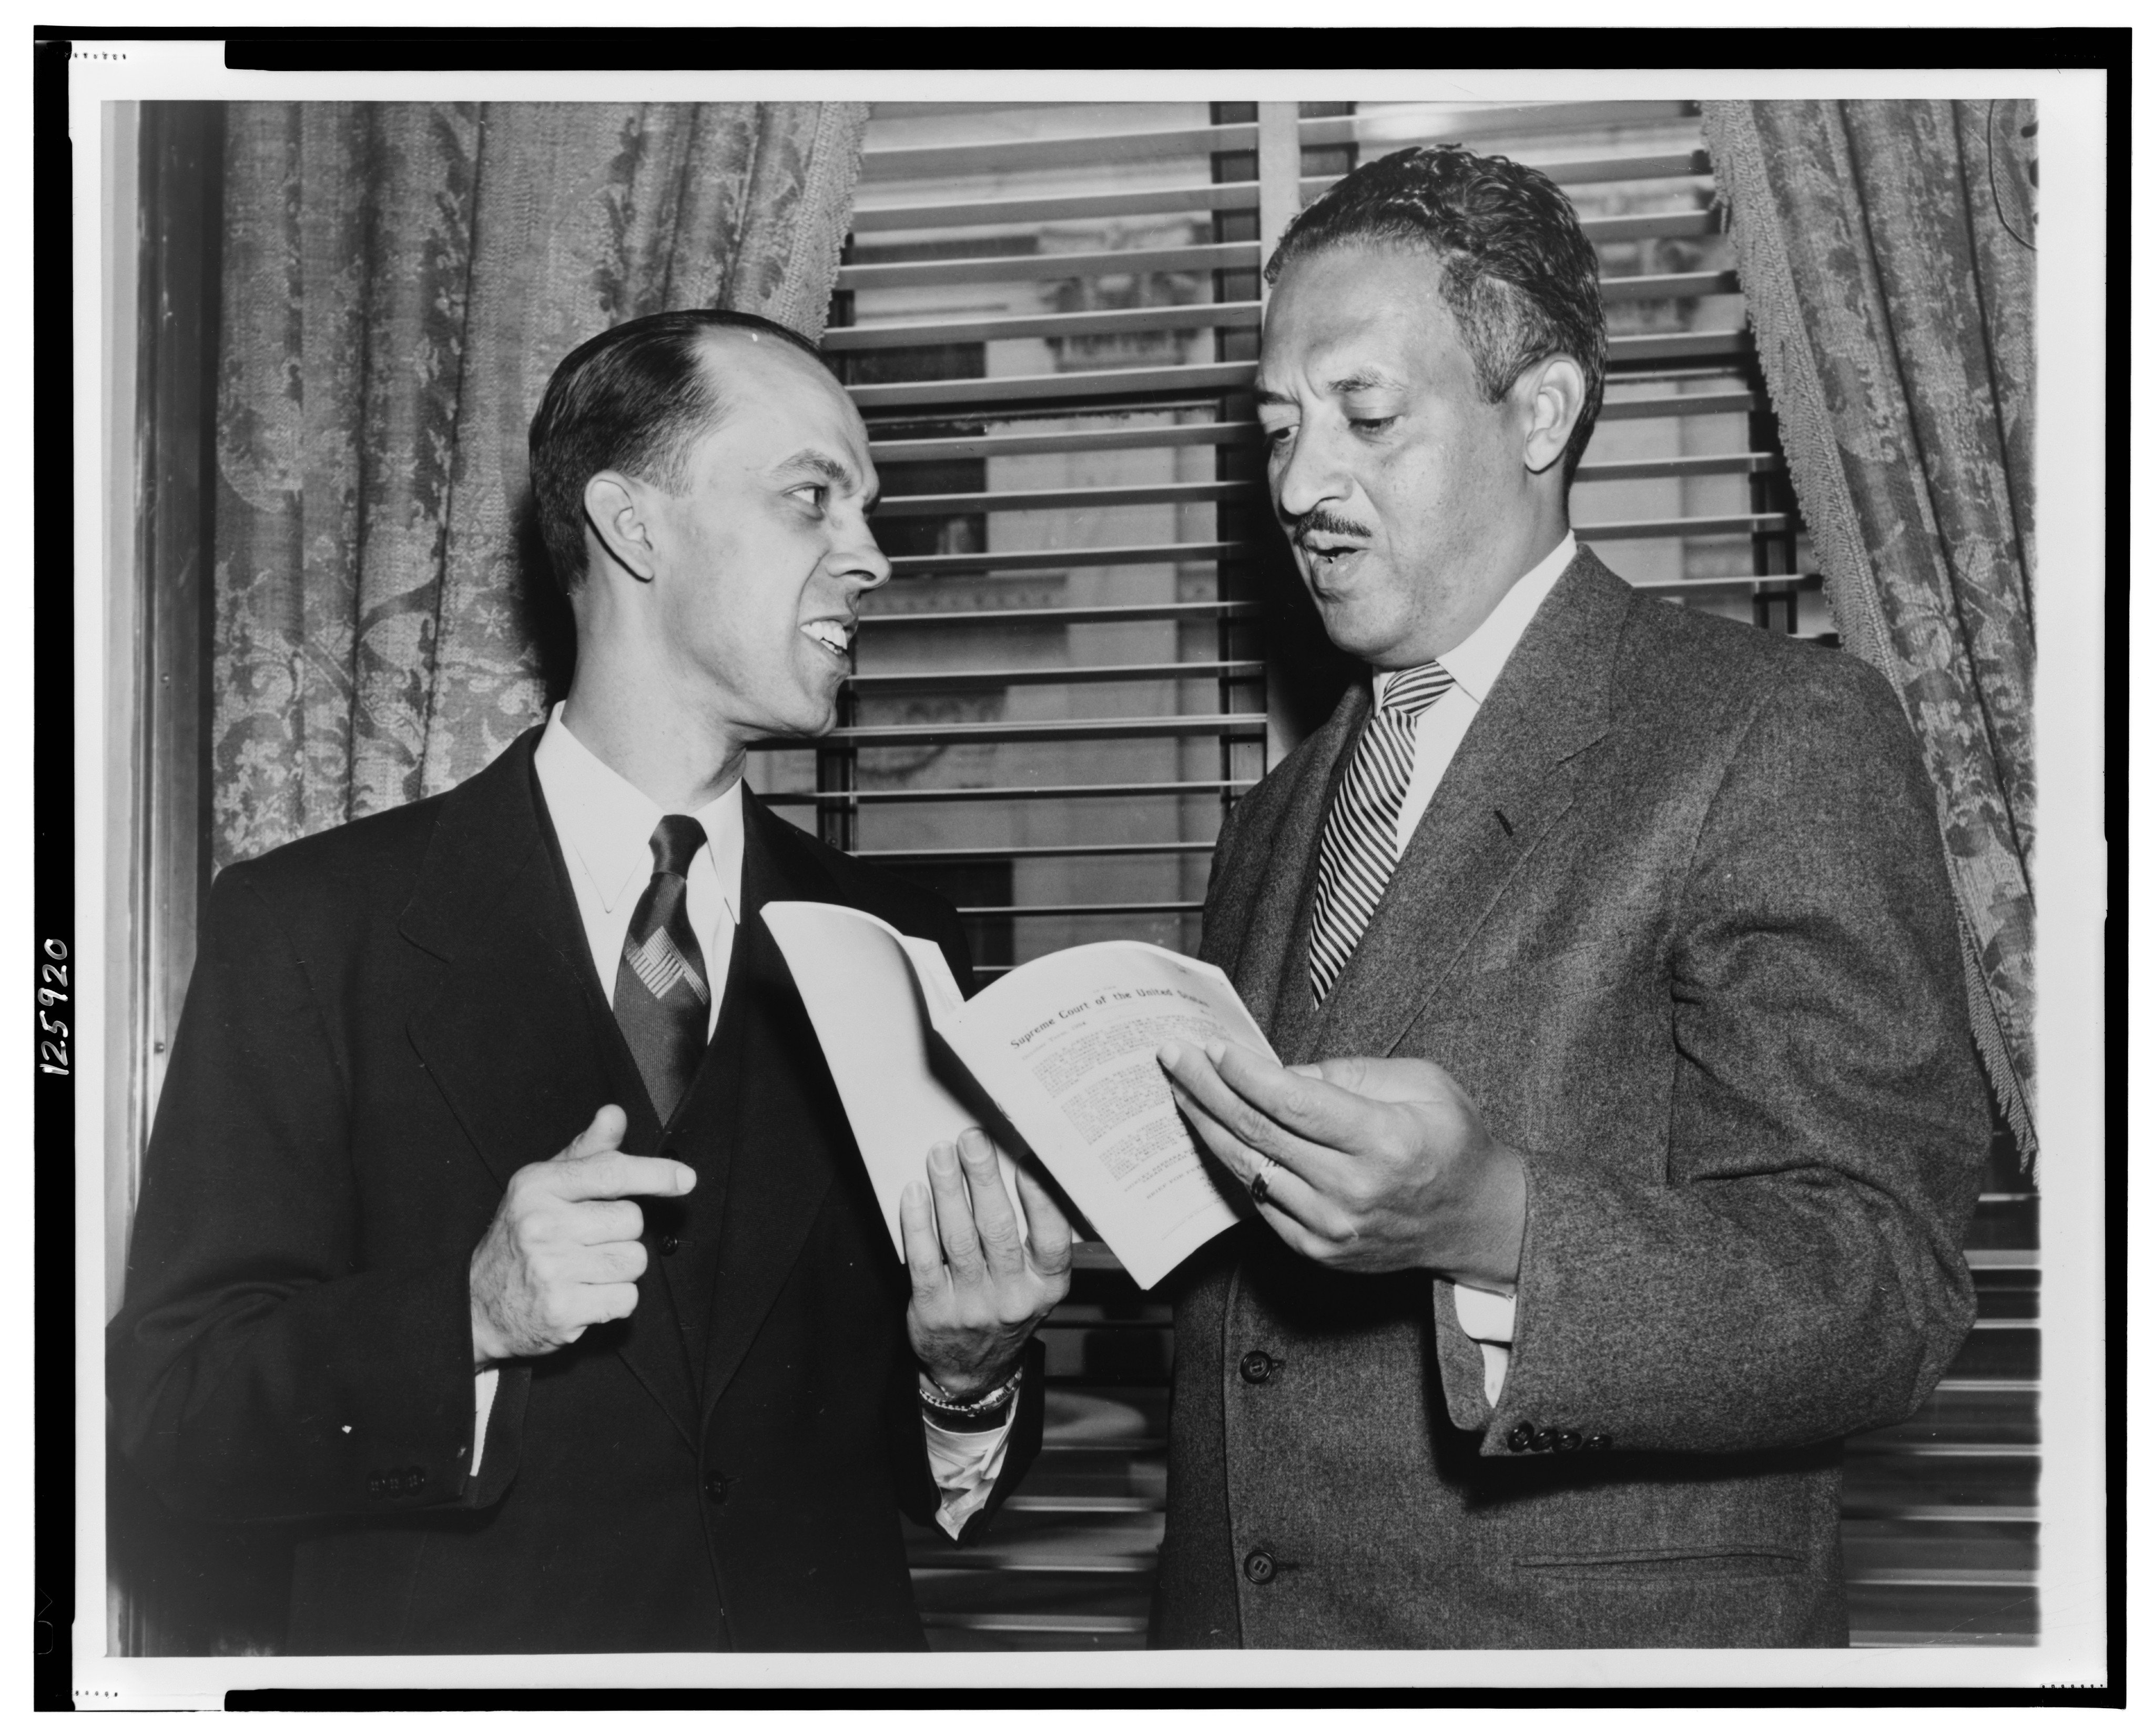 Spottswood W. Robinson III (left), and NAACP chief counsel Thurgood Marshall, half-length portrait, Brown v. Board of Education of Topeka, 349 U.S. 294, 1955, known as Brown II. Associated Press Photograph. Reproduced from the Collections of THE LIBRARY OF CONGRESS.